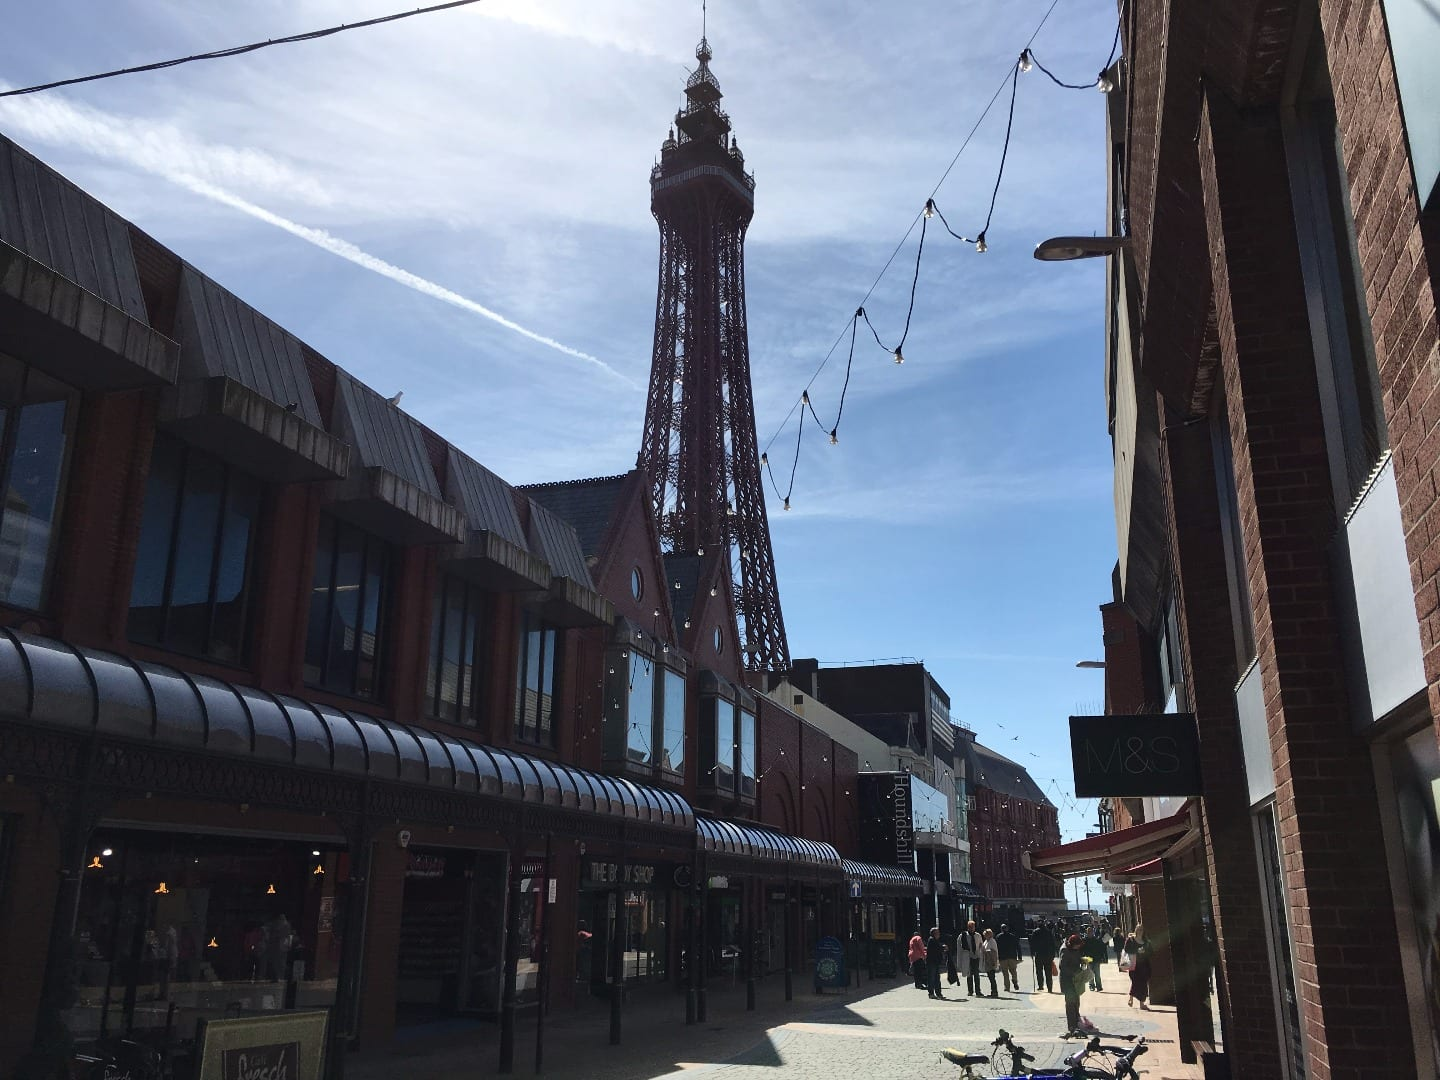 Houndshill Shopping Centre on the left, right under Blackpool Tower